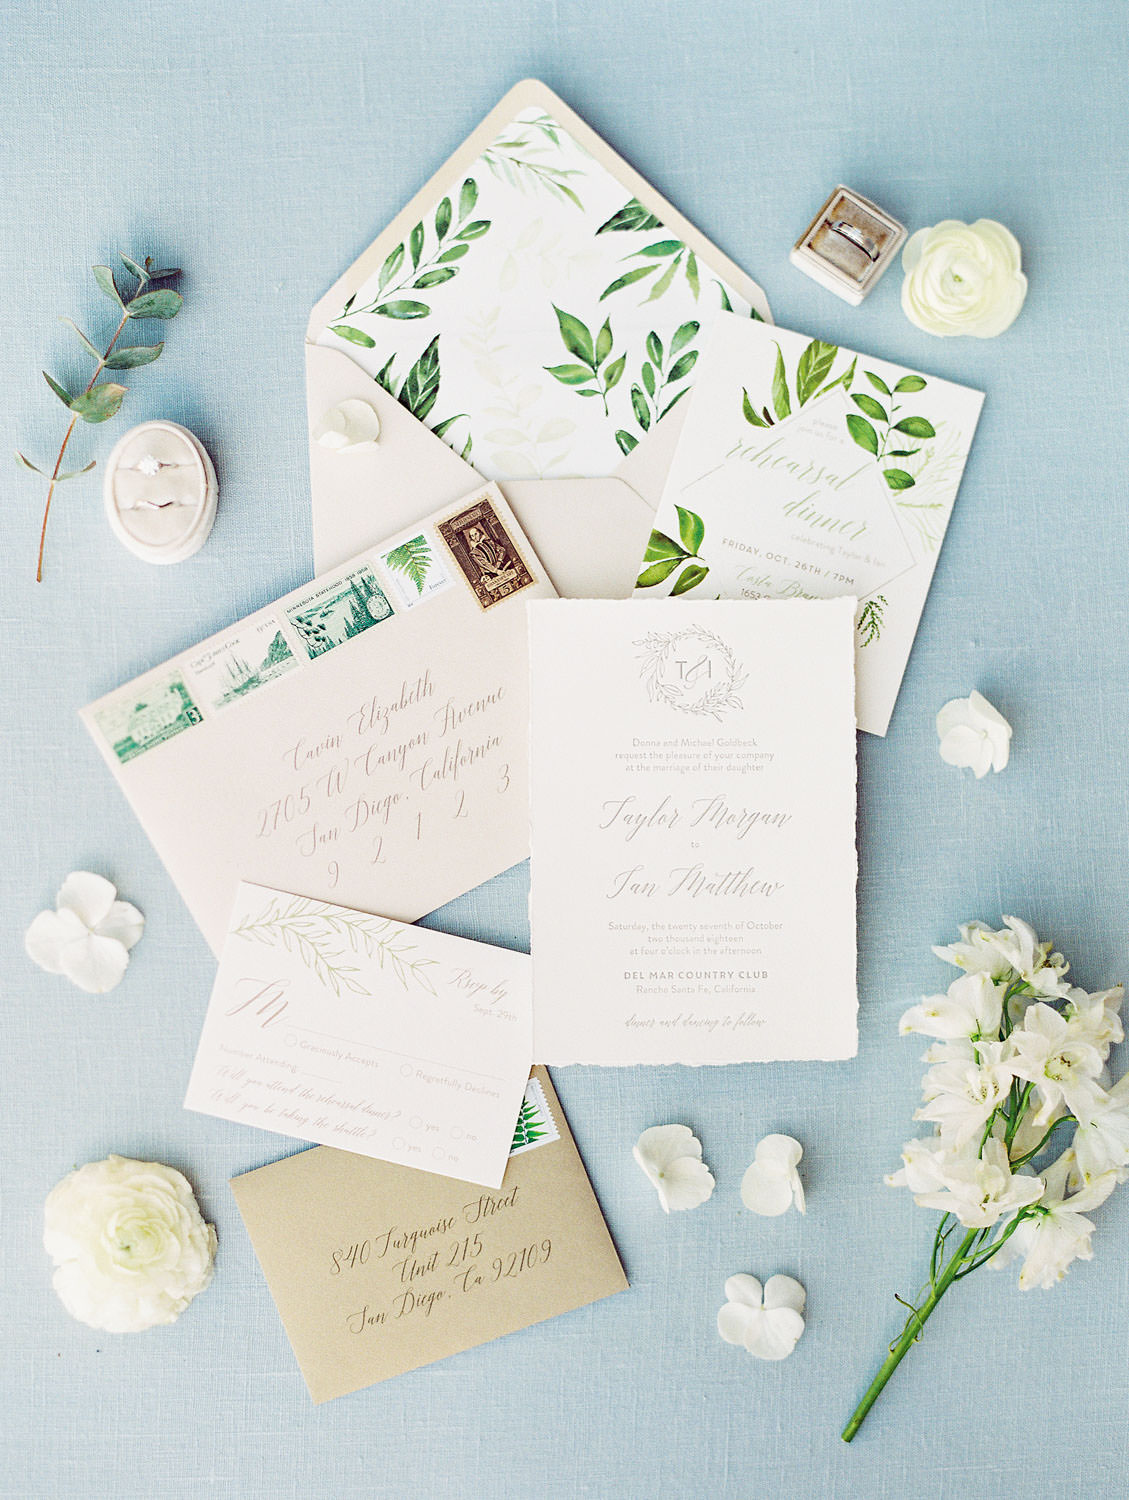 Taupe wedding envelope with greenery envelope liner. Ivory letterpress invitations, styled with white and green blooms and wedding rings in velvet ring boxes, Del Mar Country Club Wedding by Cavin Elizabeth Photography